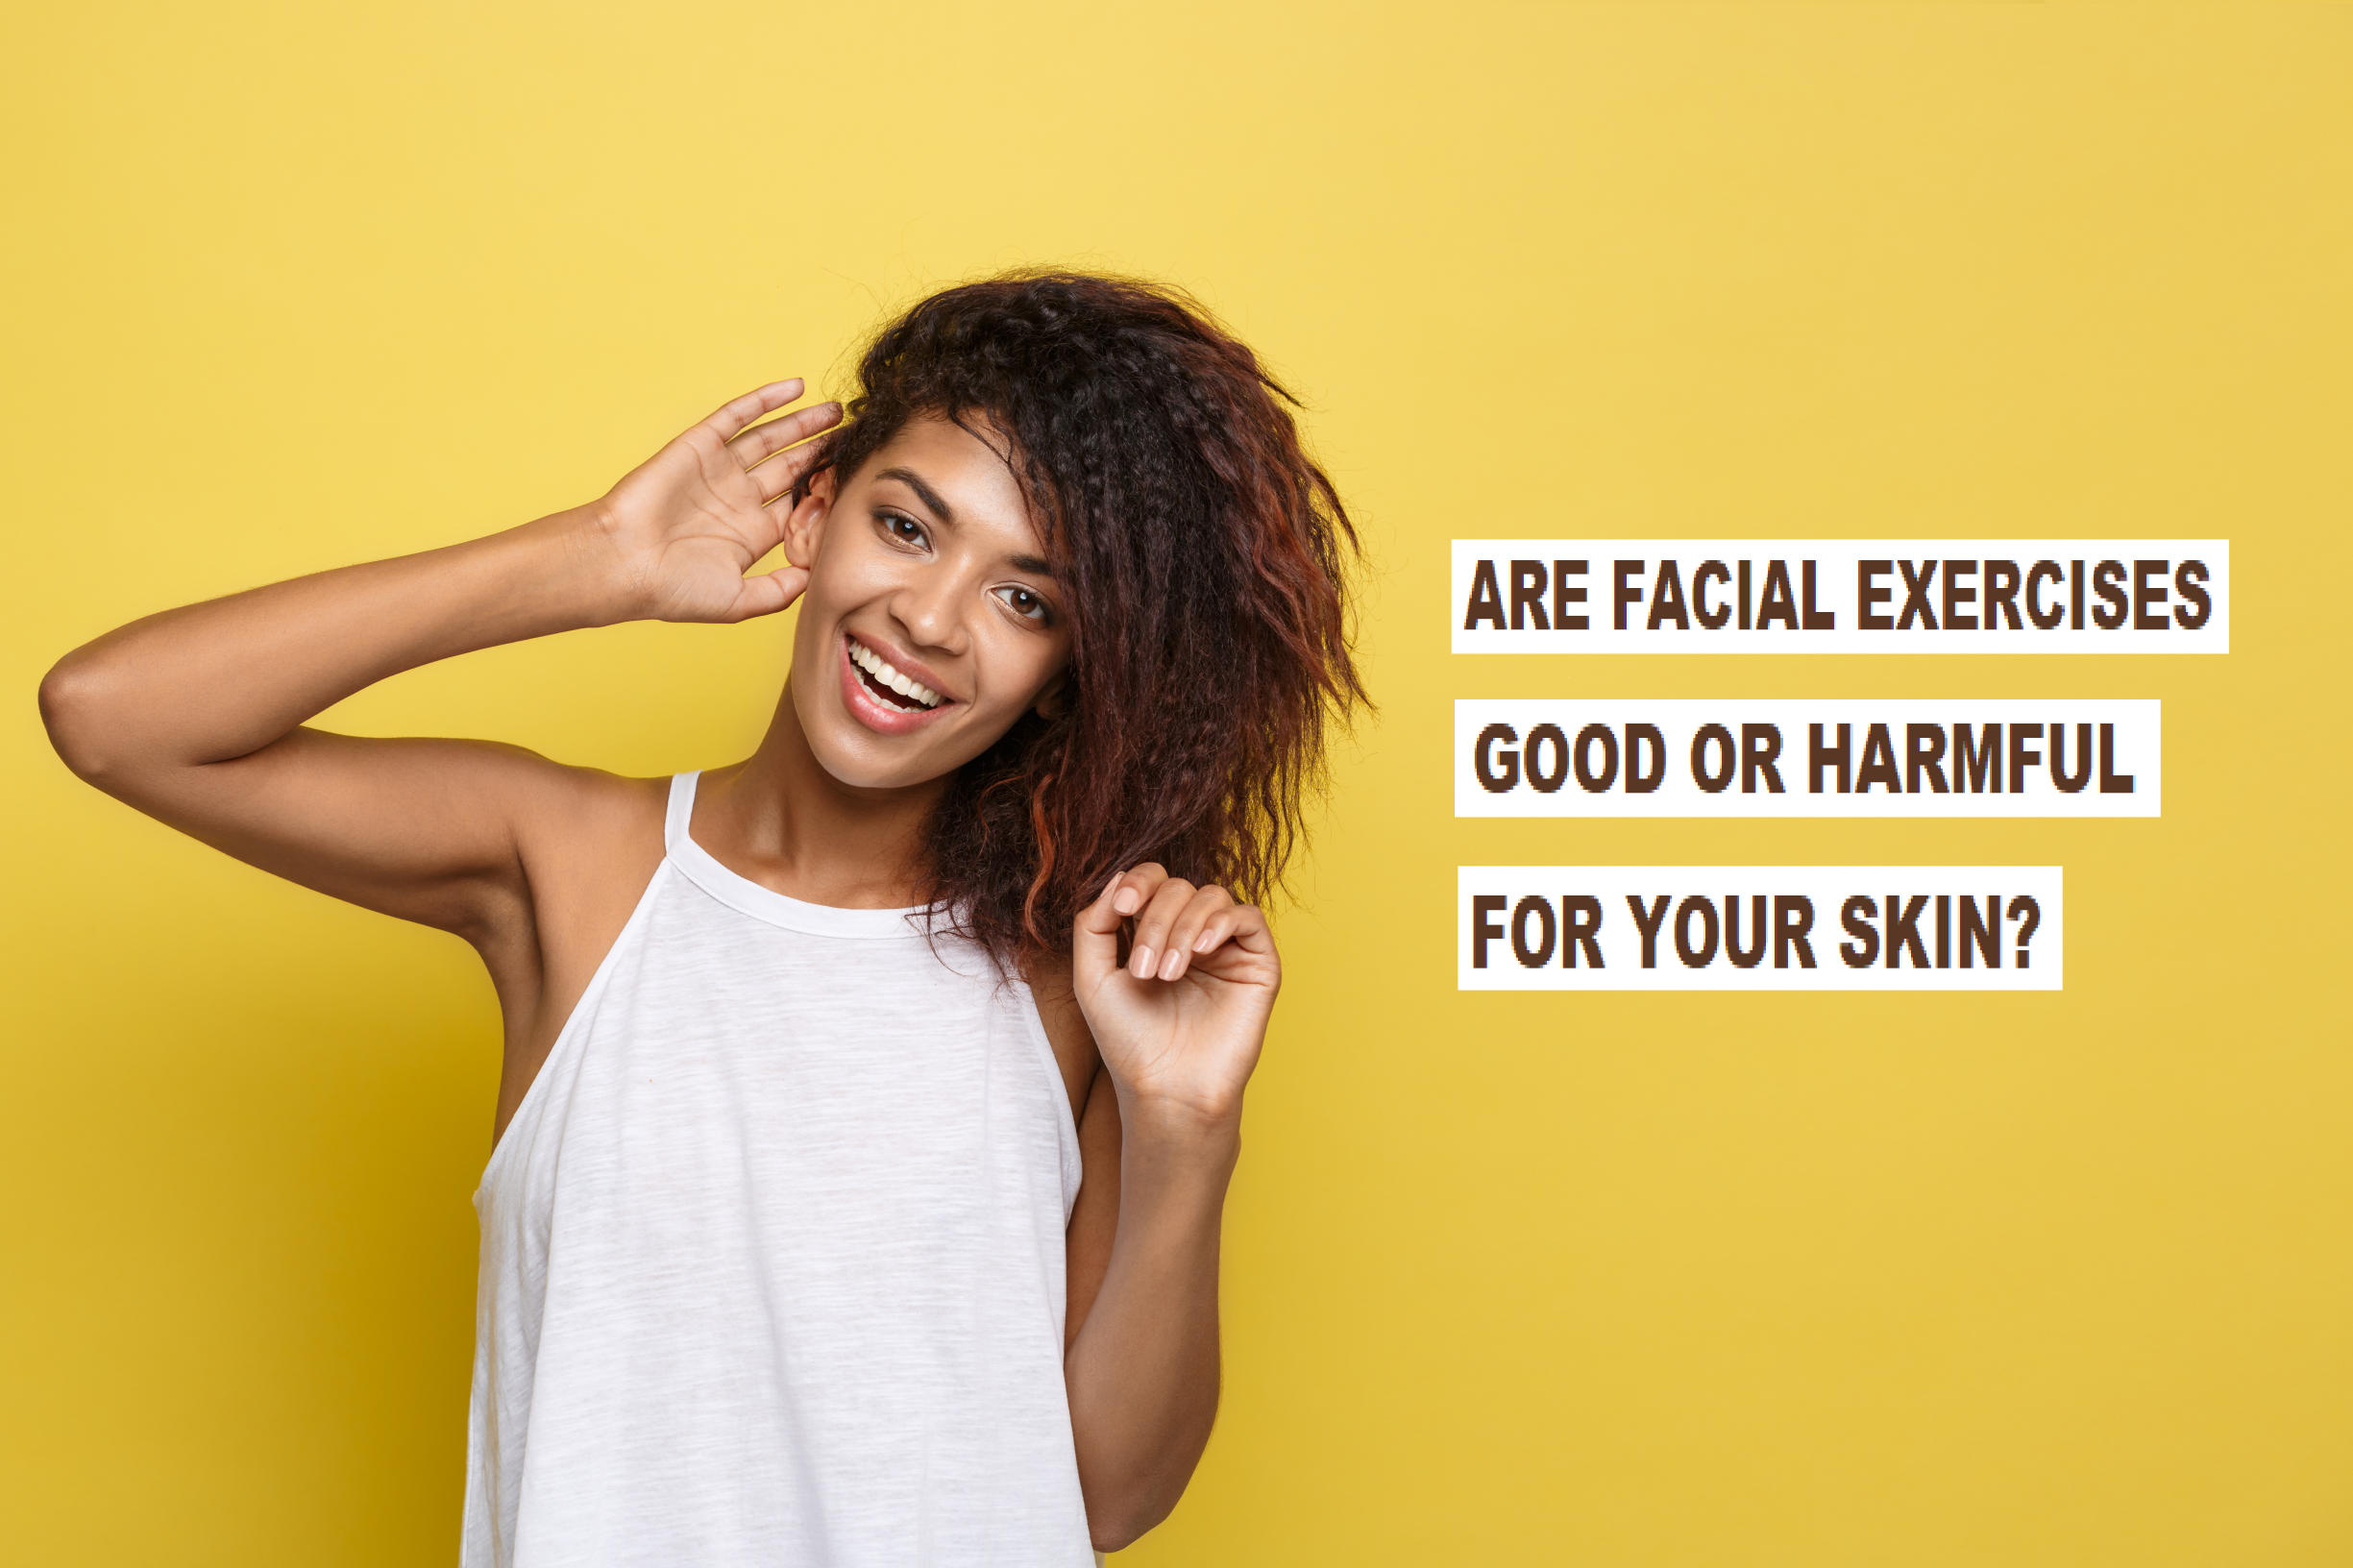 Are Facial Exercises Good or Bad for Your Skin? 4